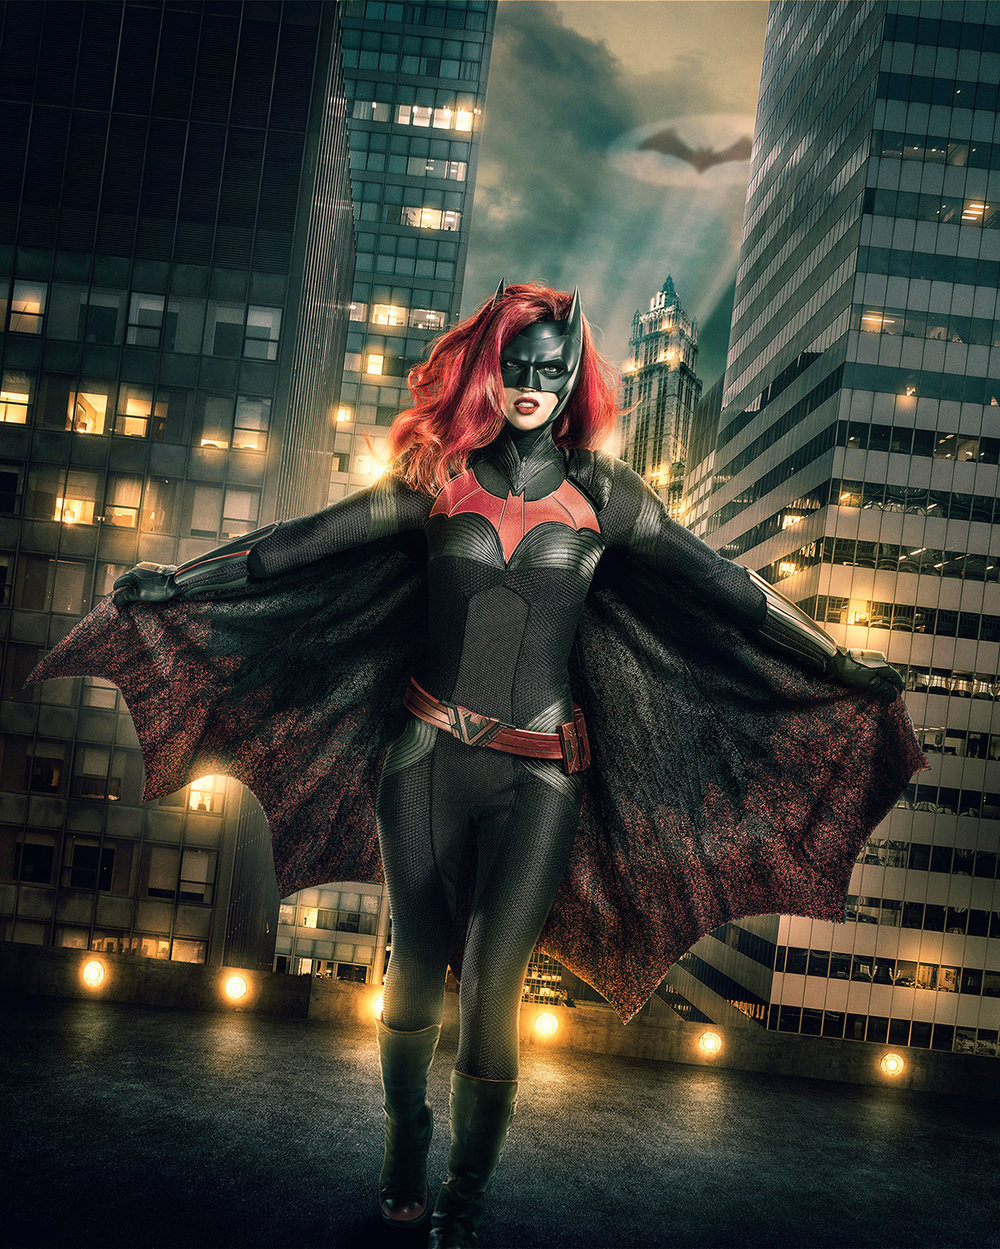 batwoman_1stlook_v5_attachment.jpg